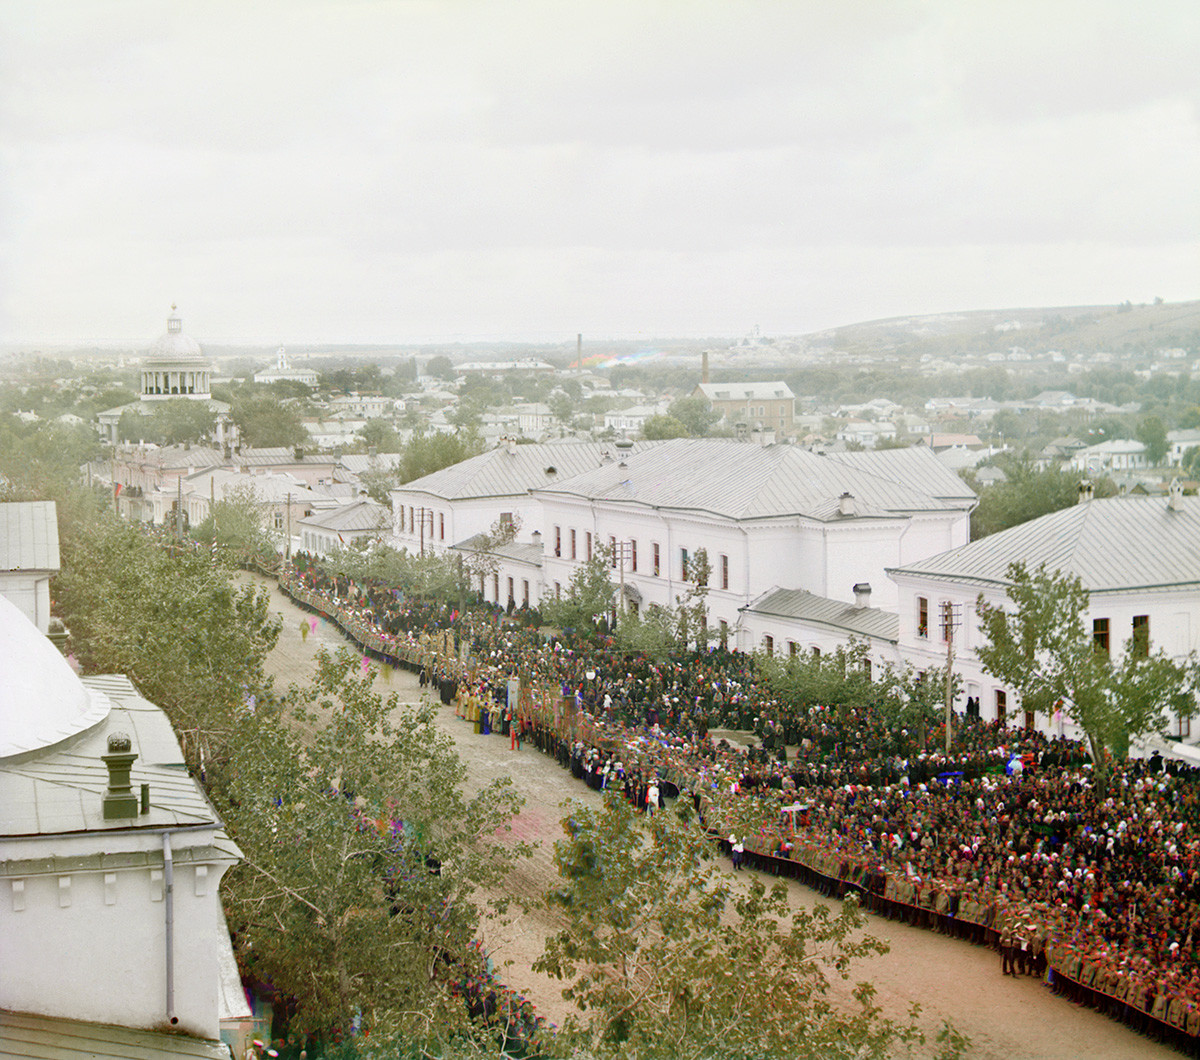 Cathedral Square, view east from Trinity Monastery bell tower on September 4, 1911. Dignitaries & crowds gathered for Procession of the Cross in homage to the canonization of St. Ioasaph. Left distance: domed Cathedral of the Nativity of the Virgin Convent